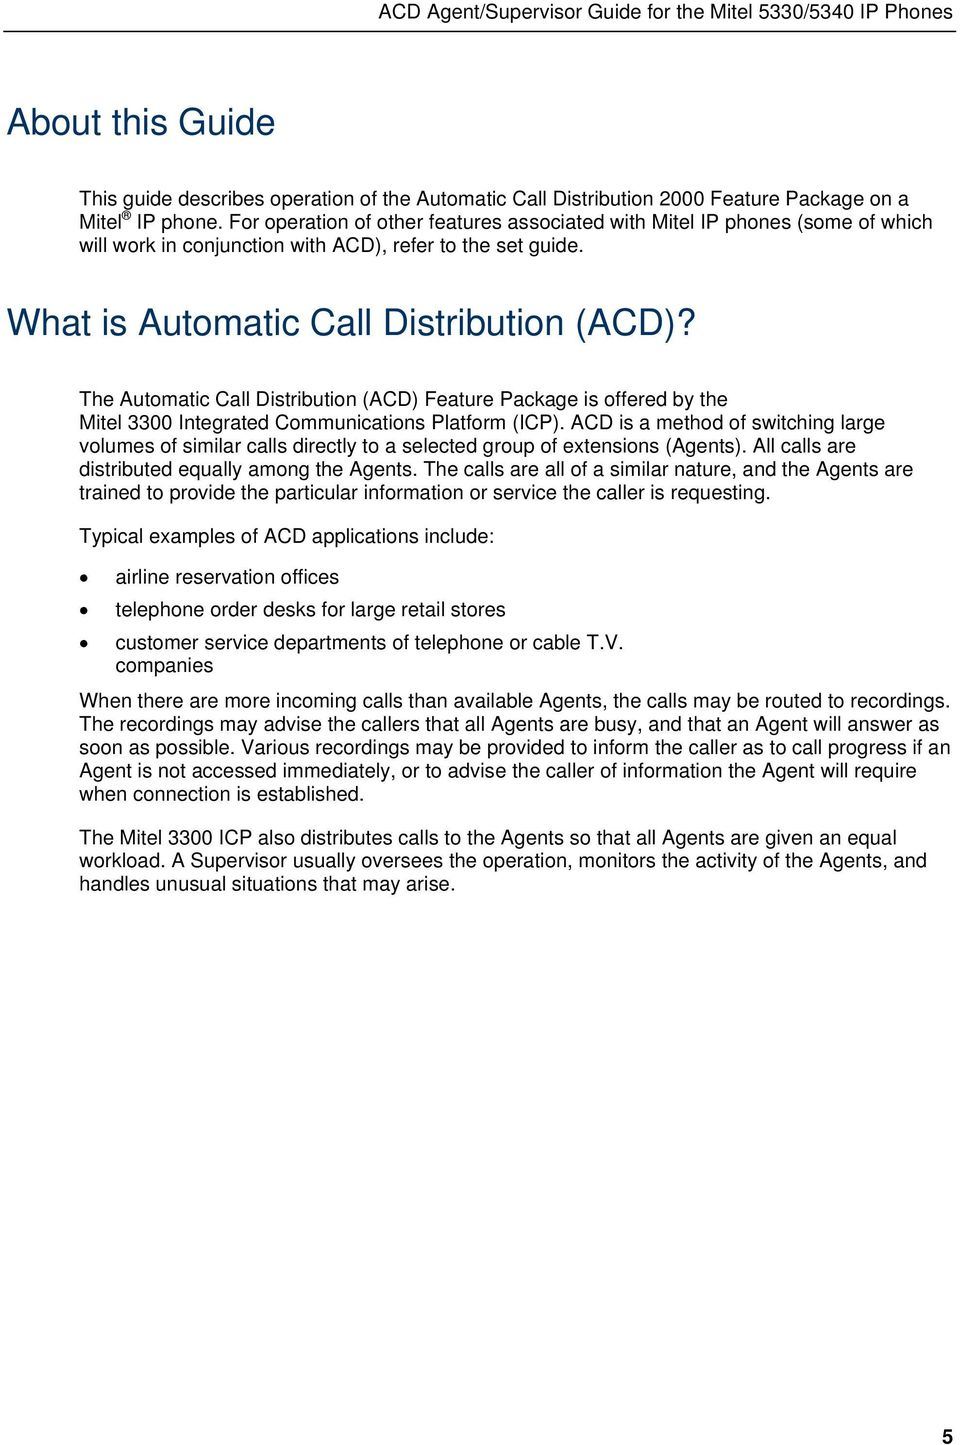 The Automatic Call Distribution (ACD) Feature Package is offered by the Mitel 3300 Integrated Communications Platform (ICP).